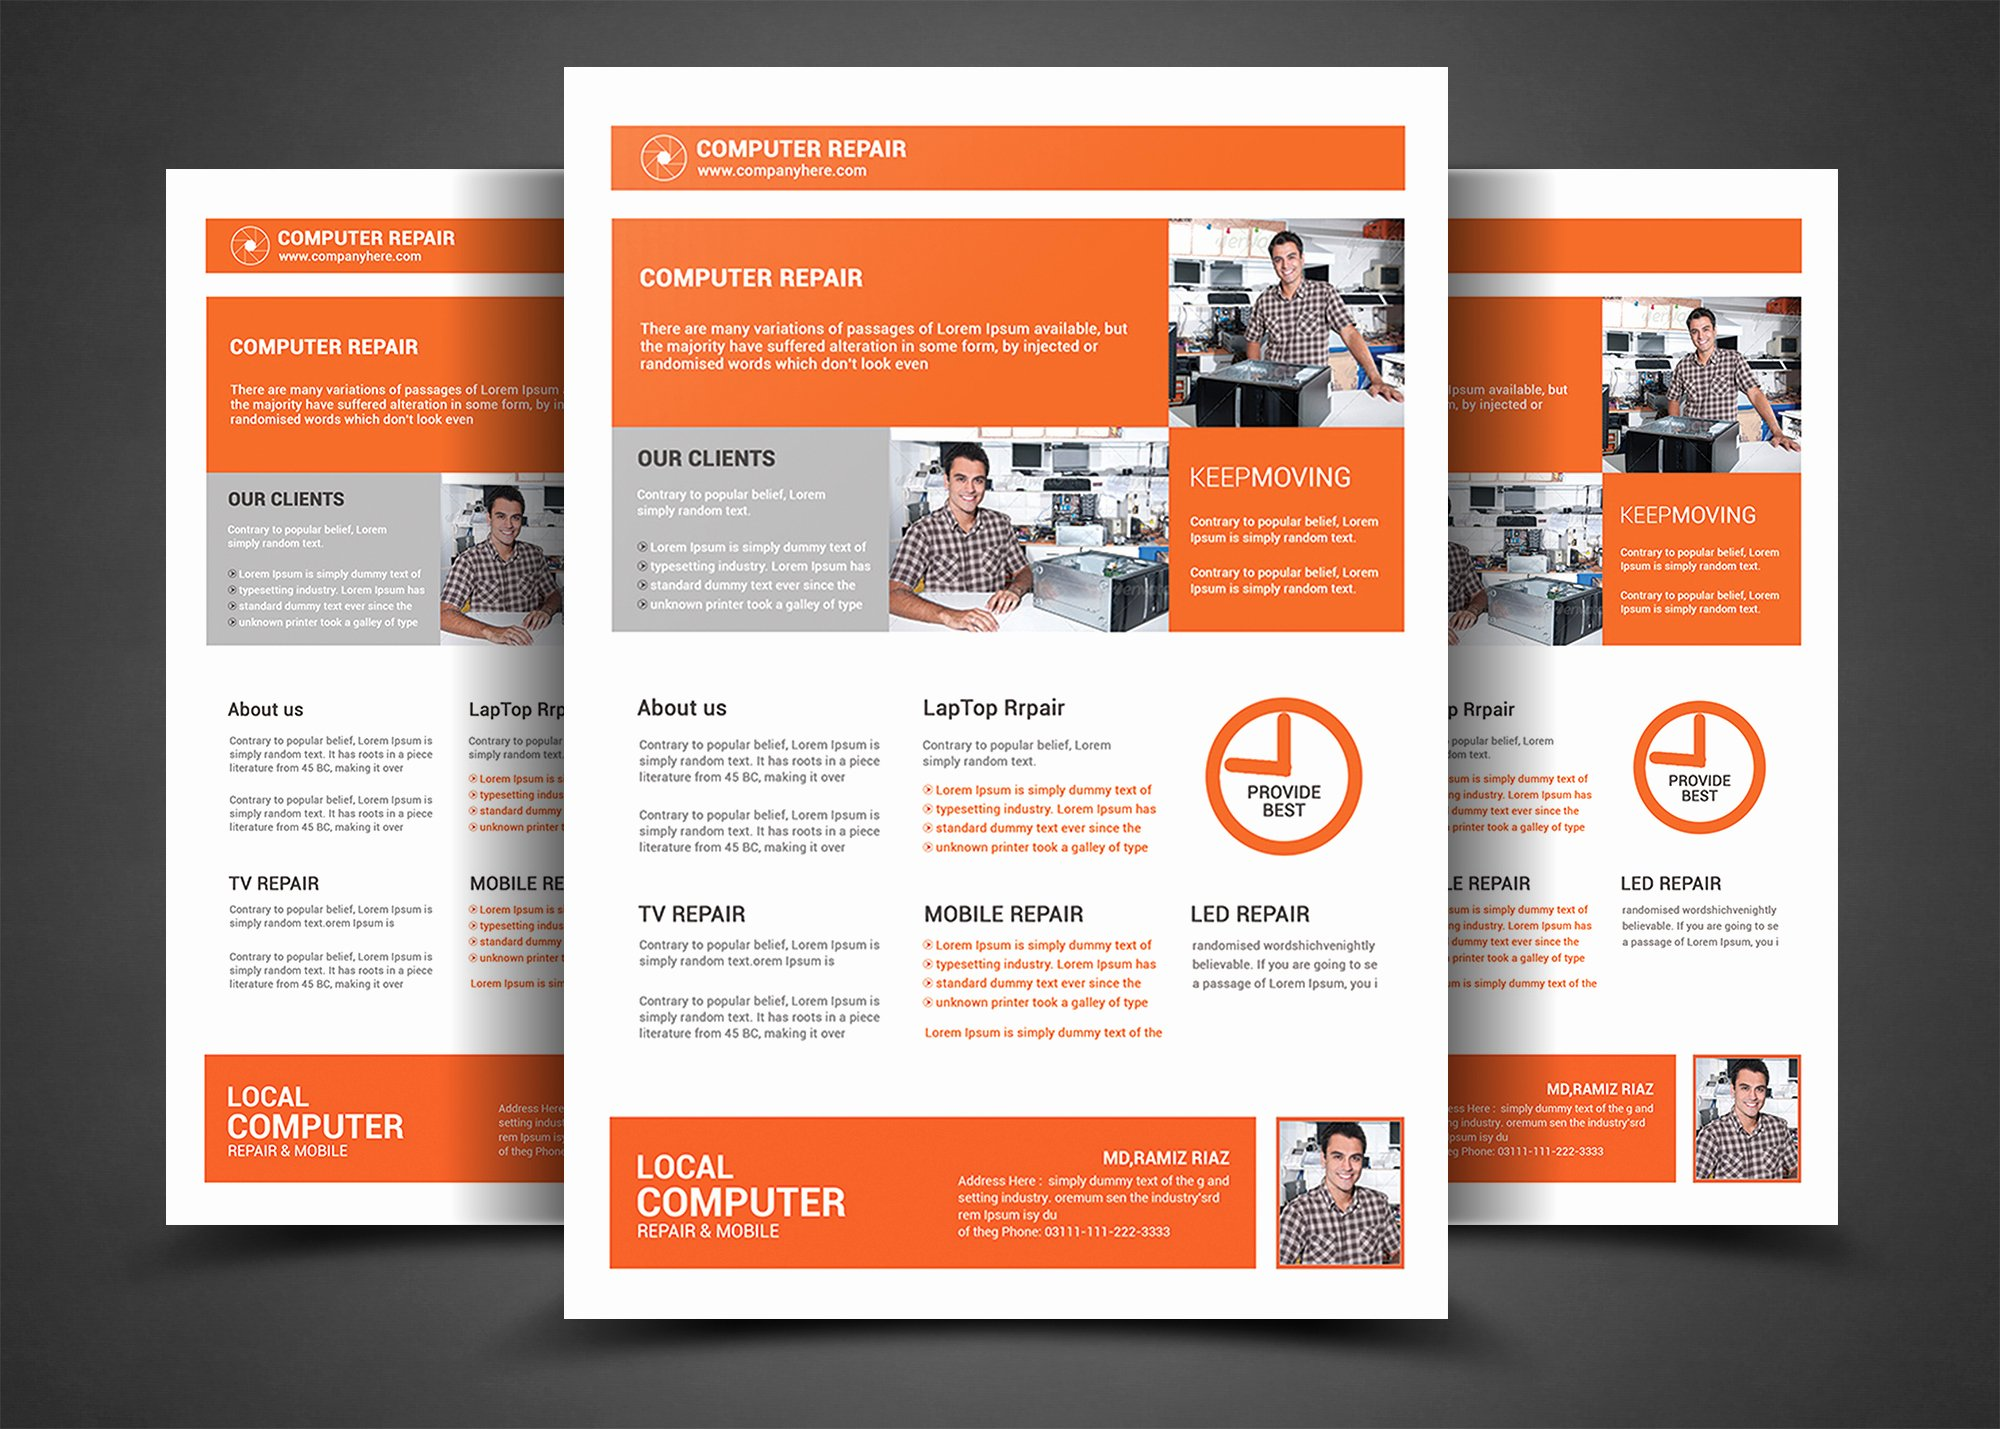 Computer Repair Flyer Template Lovely Puter Repair Flyer Template Flyer Templates On